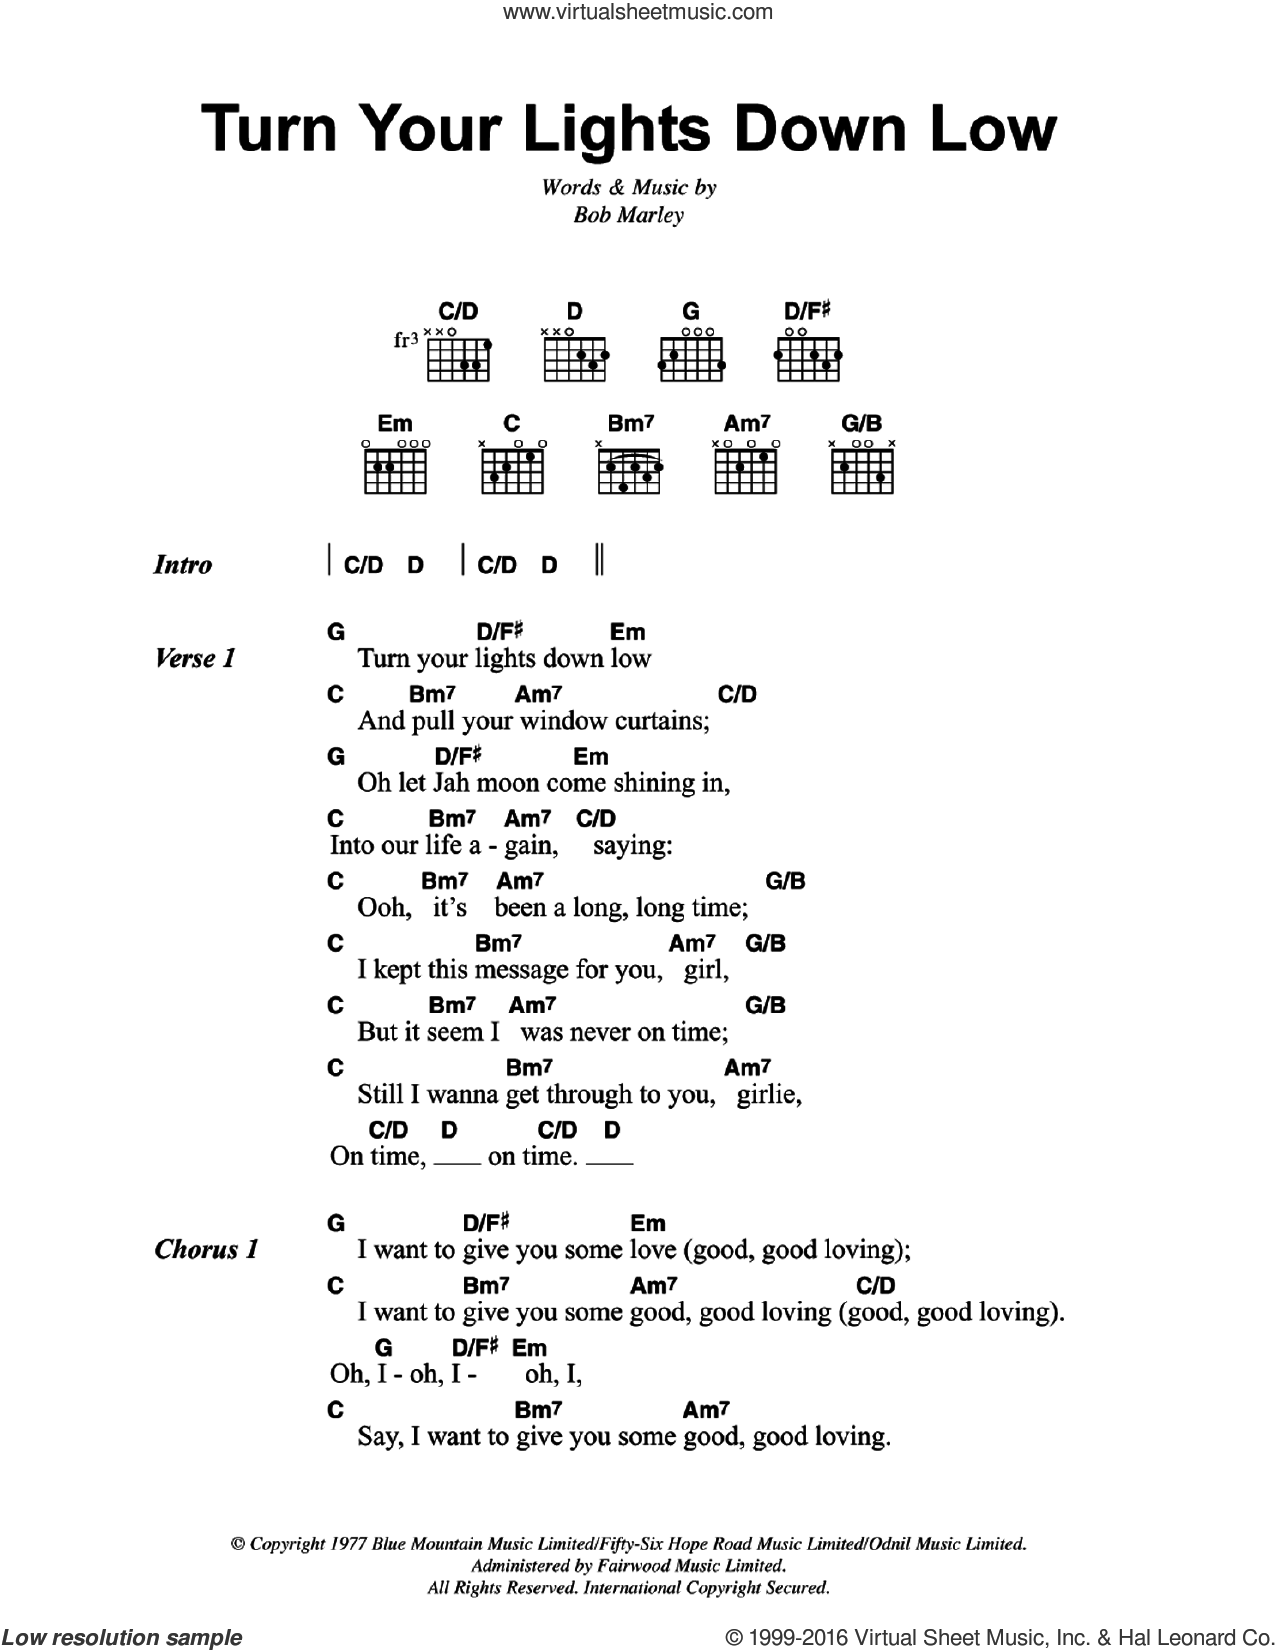 Turn Your Lights Down Low sheet music for guitar (chords) by Bob Marley. Score Image Preview.